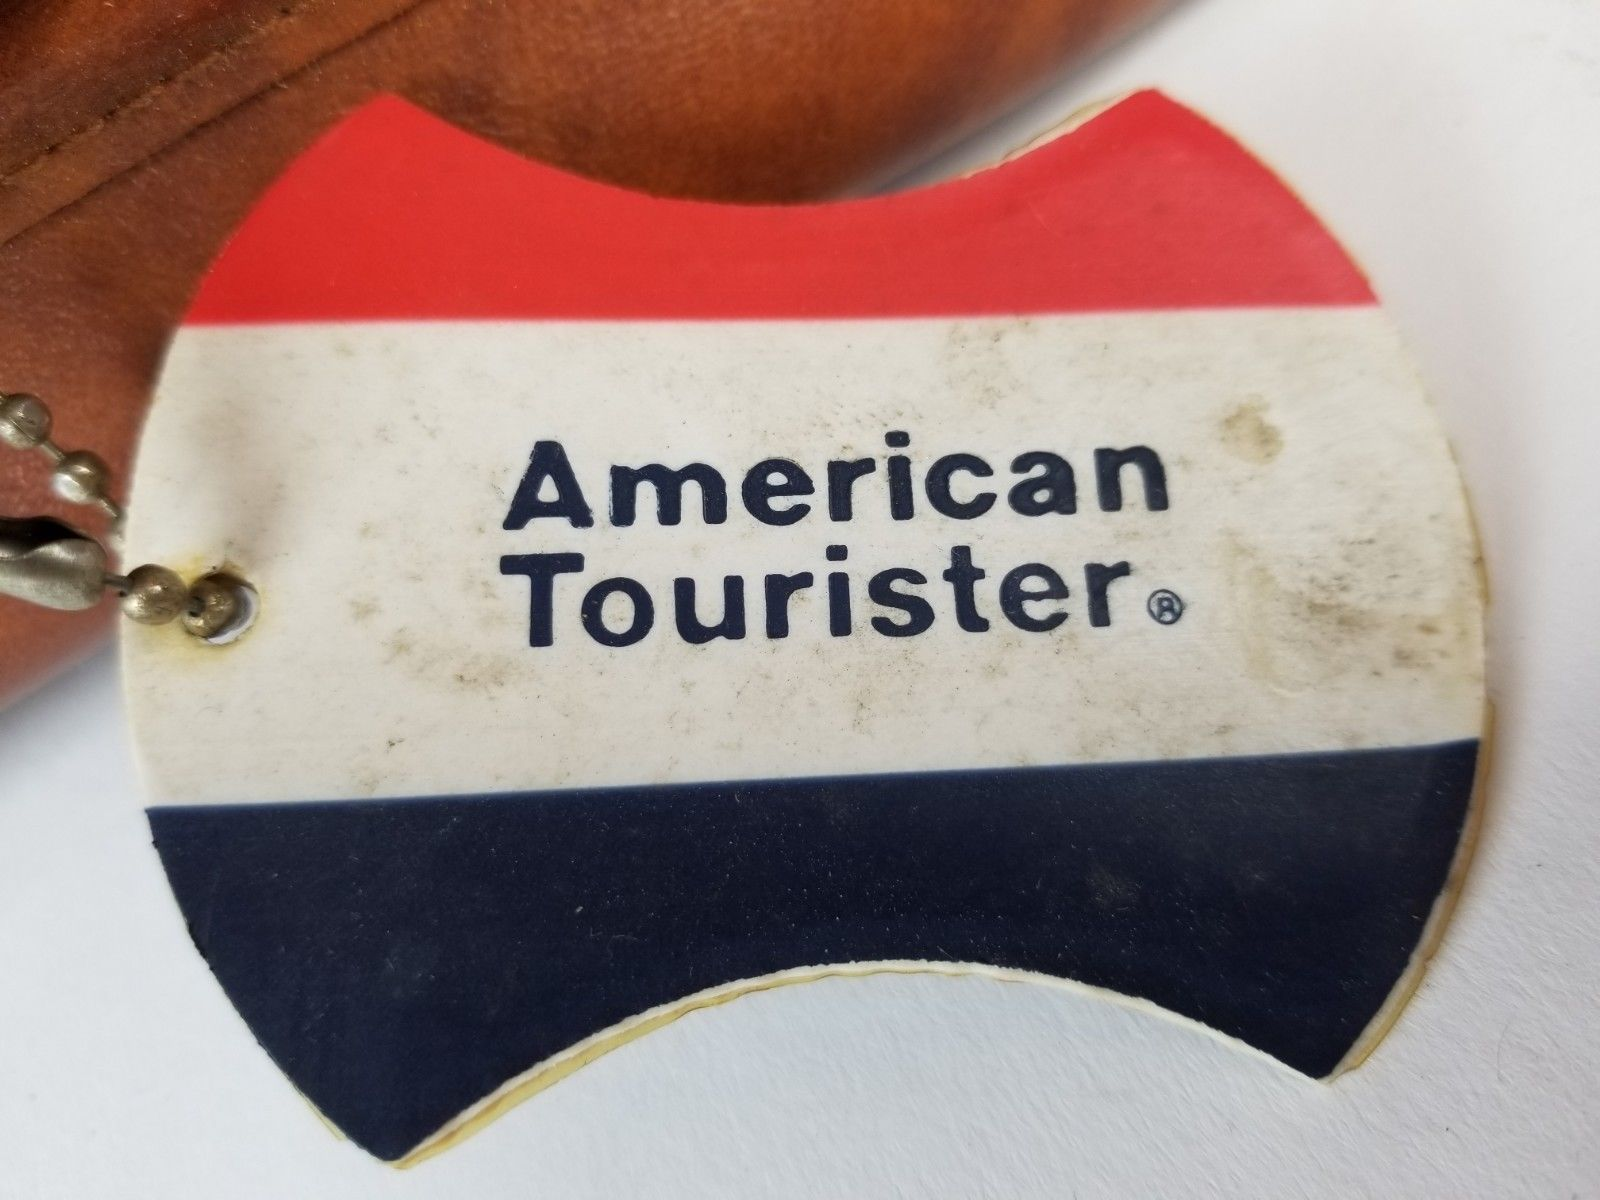 Vintage American Tourist Brown Leather Suitcase Luggage -Free Shipping